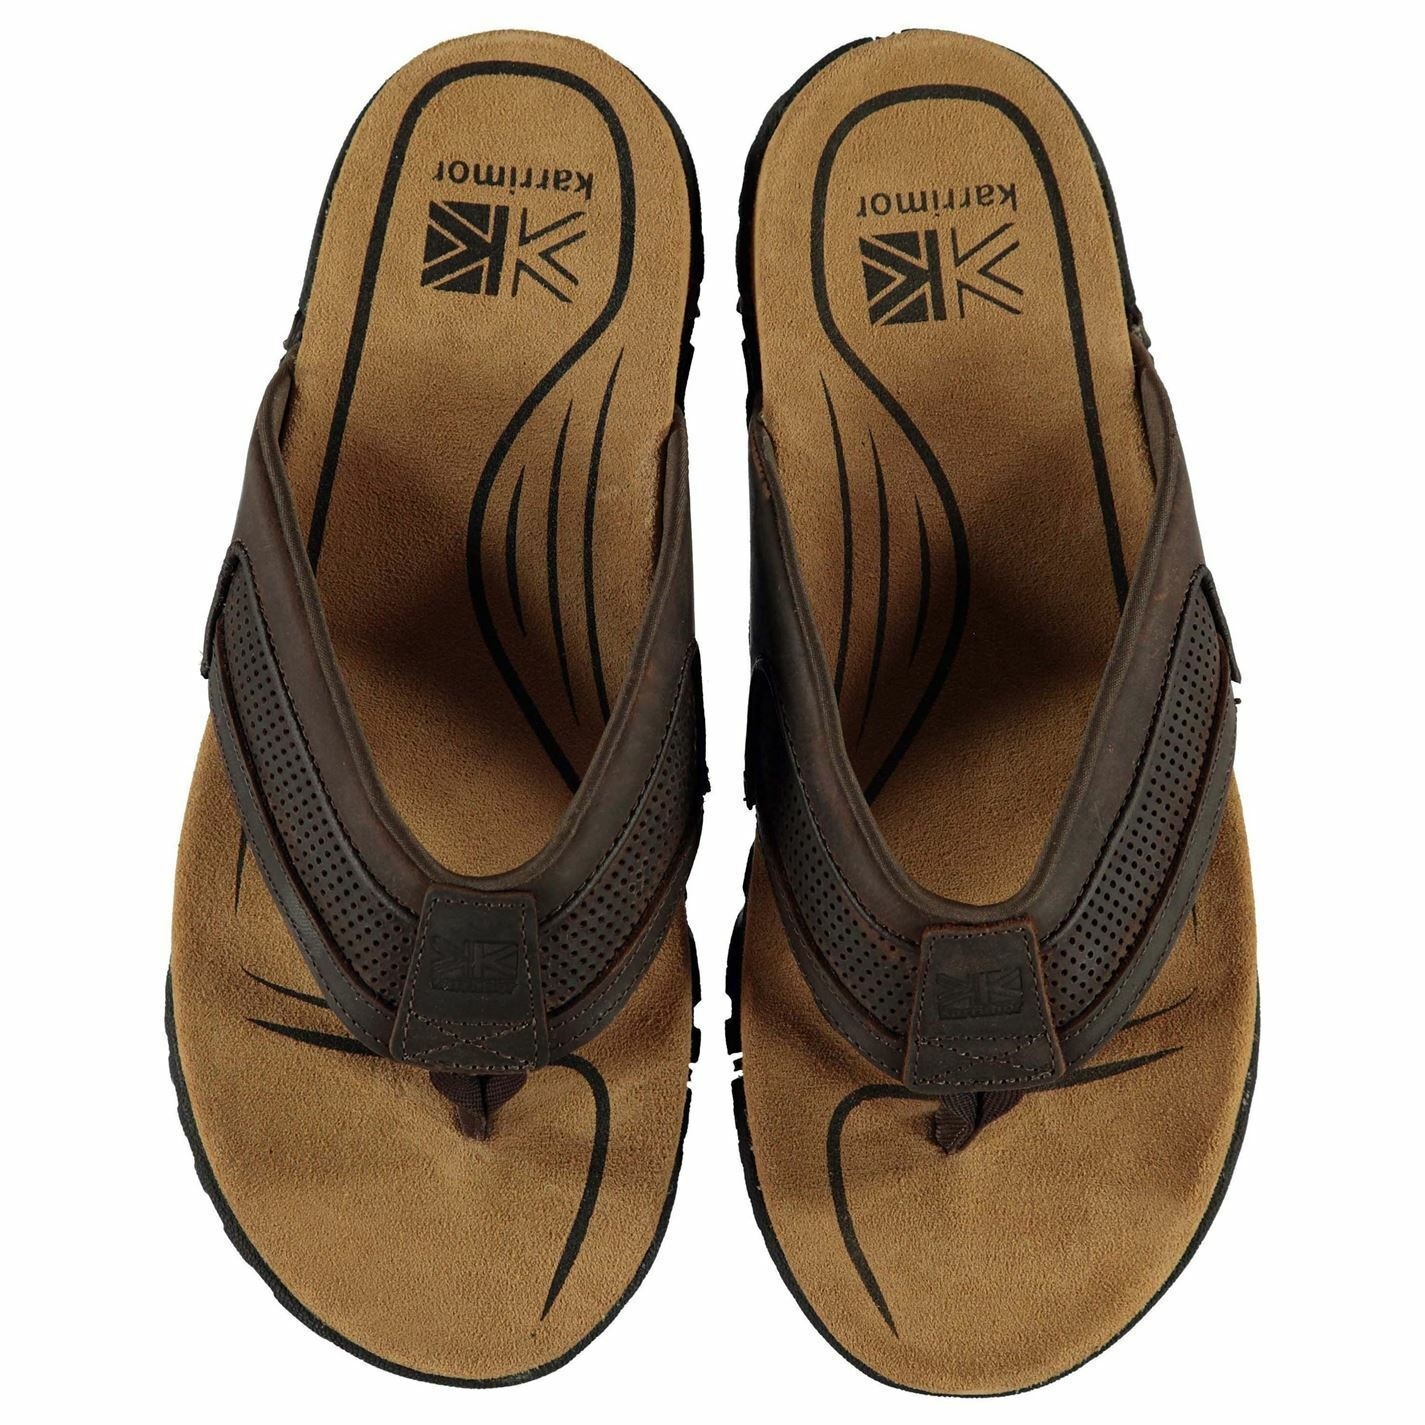 Karrimor Lounge Mens Flip Flops marrón Outdoor Footwear